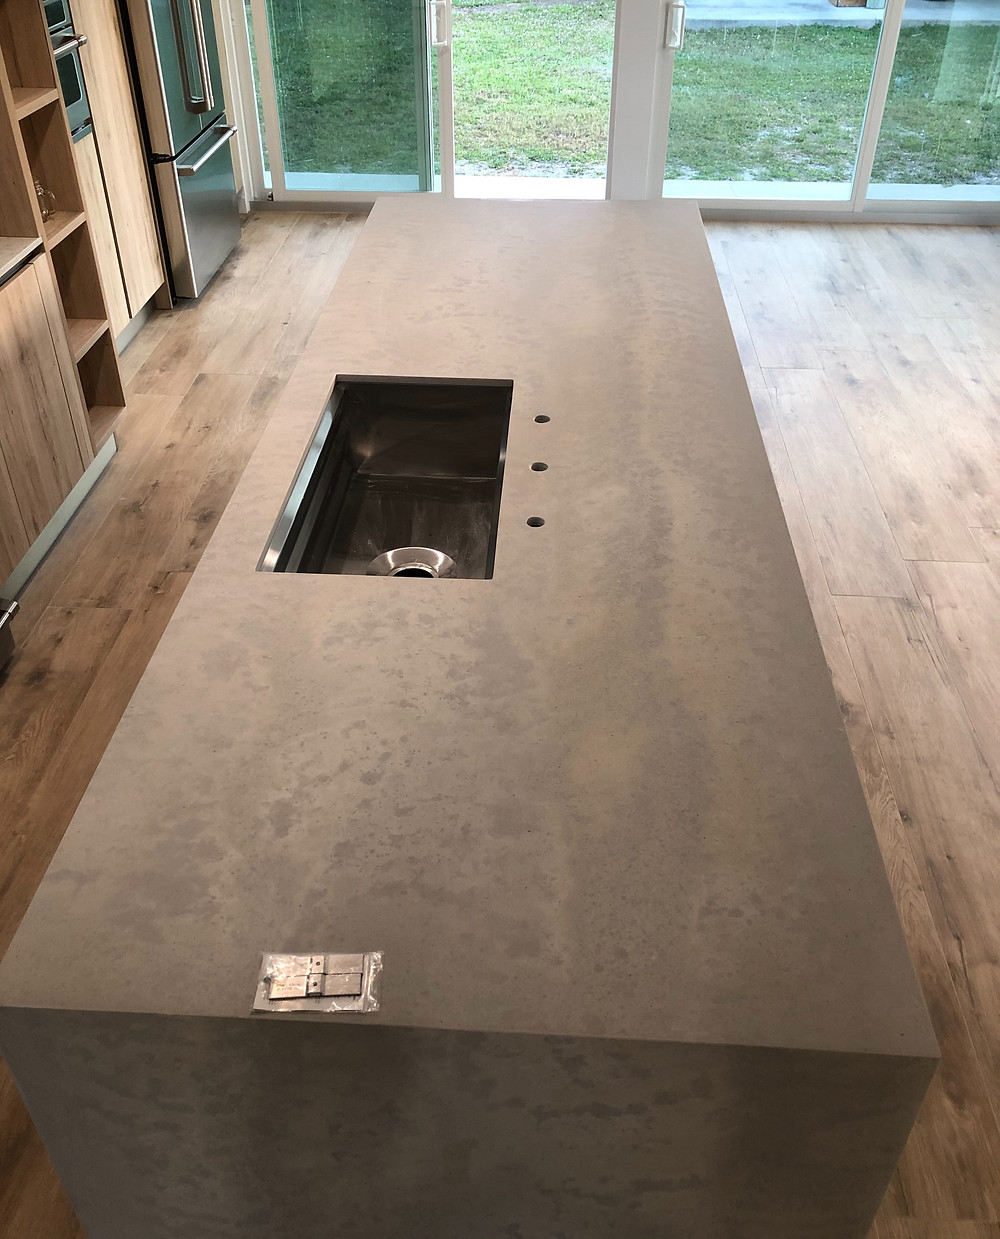 How fabricate and install Caesarstone in Boca Raton FL? contact the experts Stone and Quartz LLC over 22 years of experience. Boca Raton fl